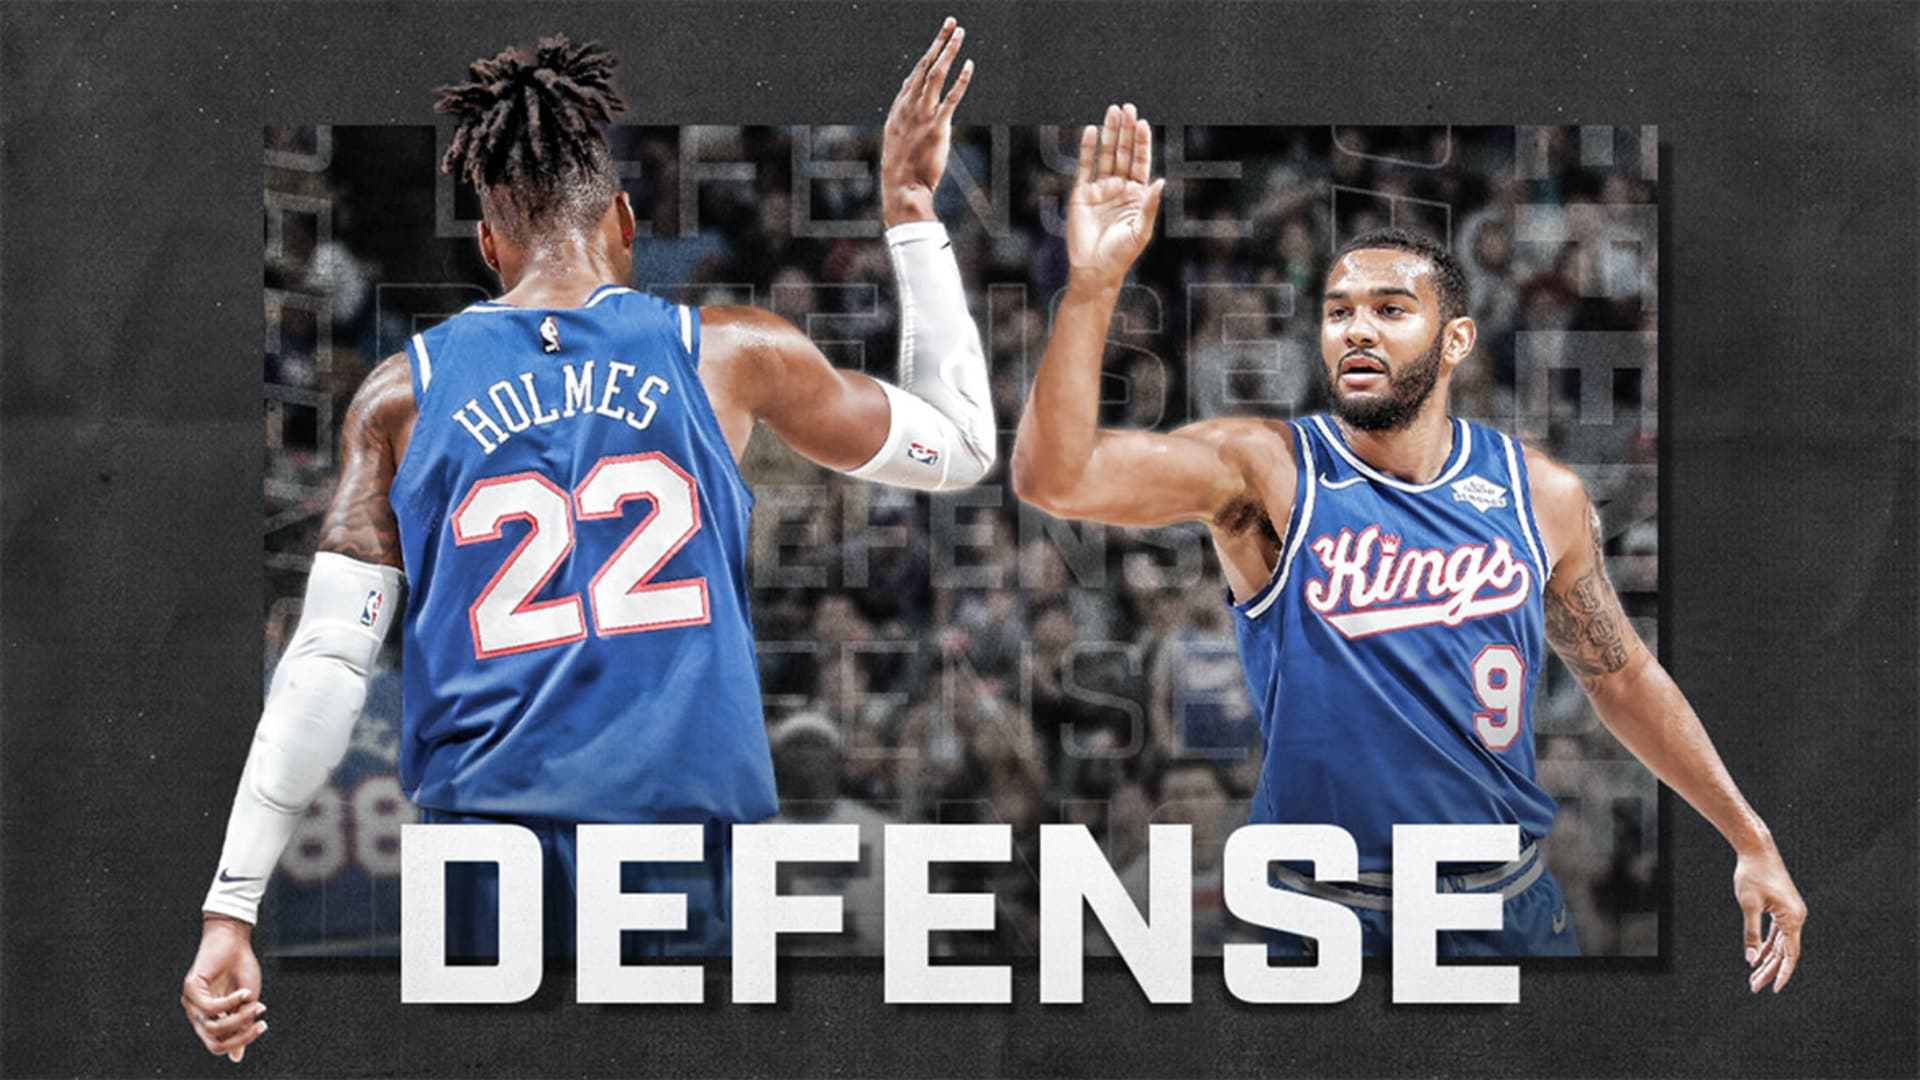 Inside the Team's New Defensive Identity